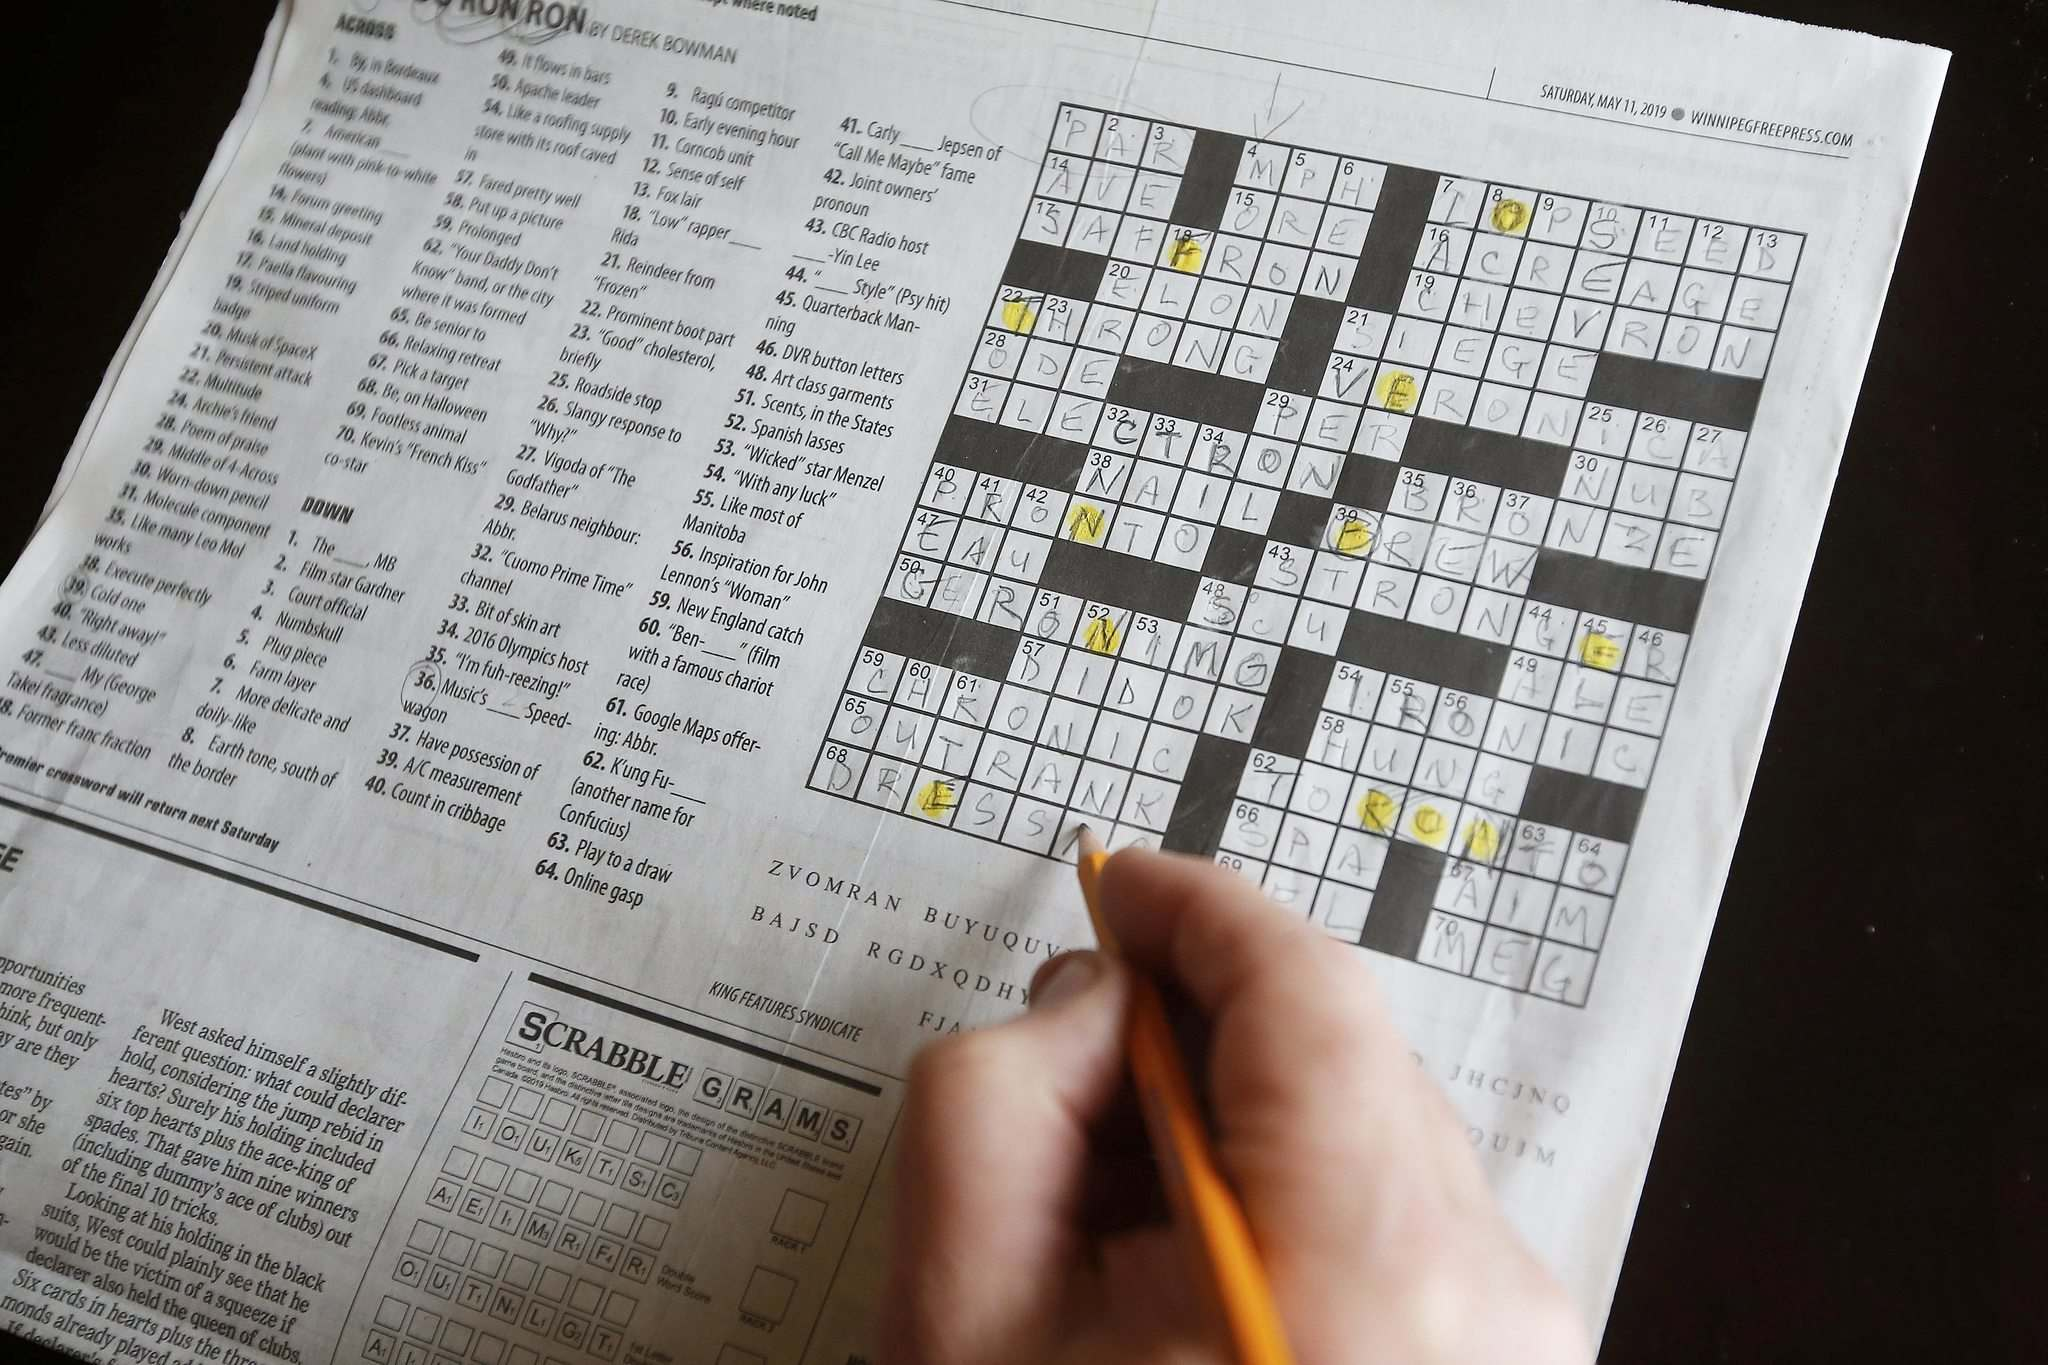 The crossword from designer Derek Bowman contained words with &#8216;Ron&rsquo; in them.</p>